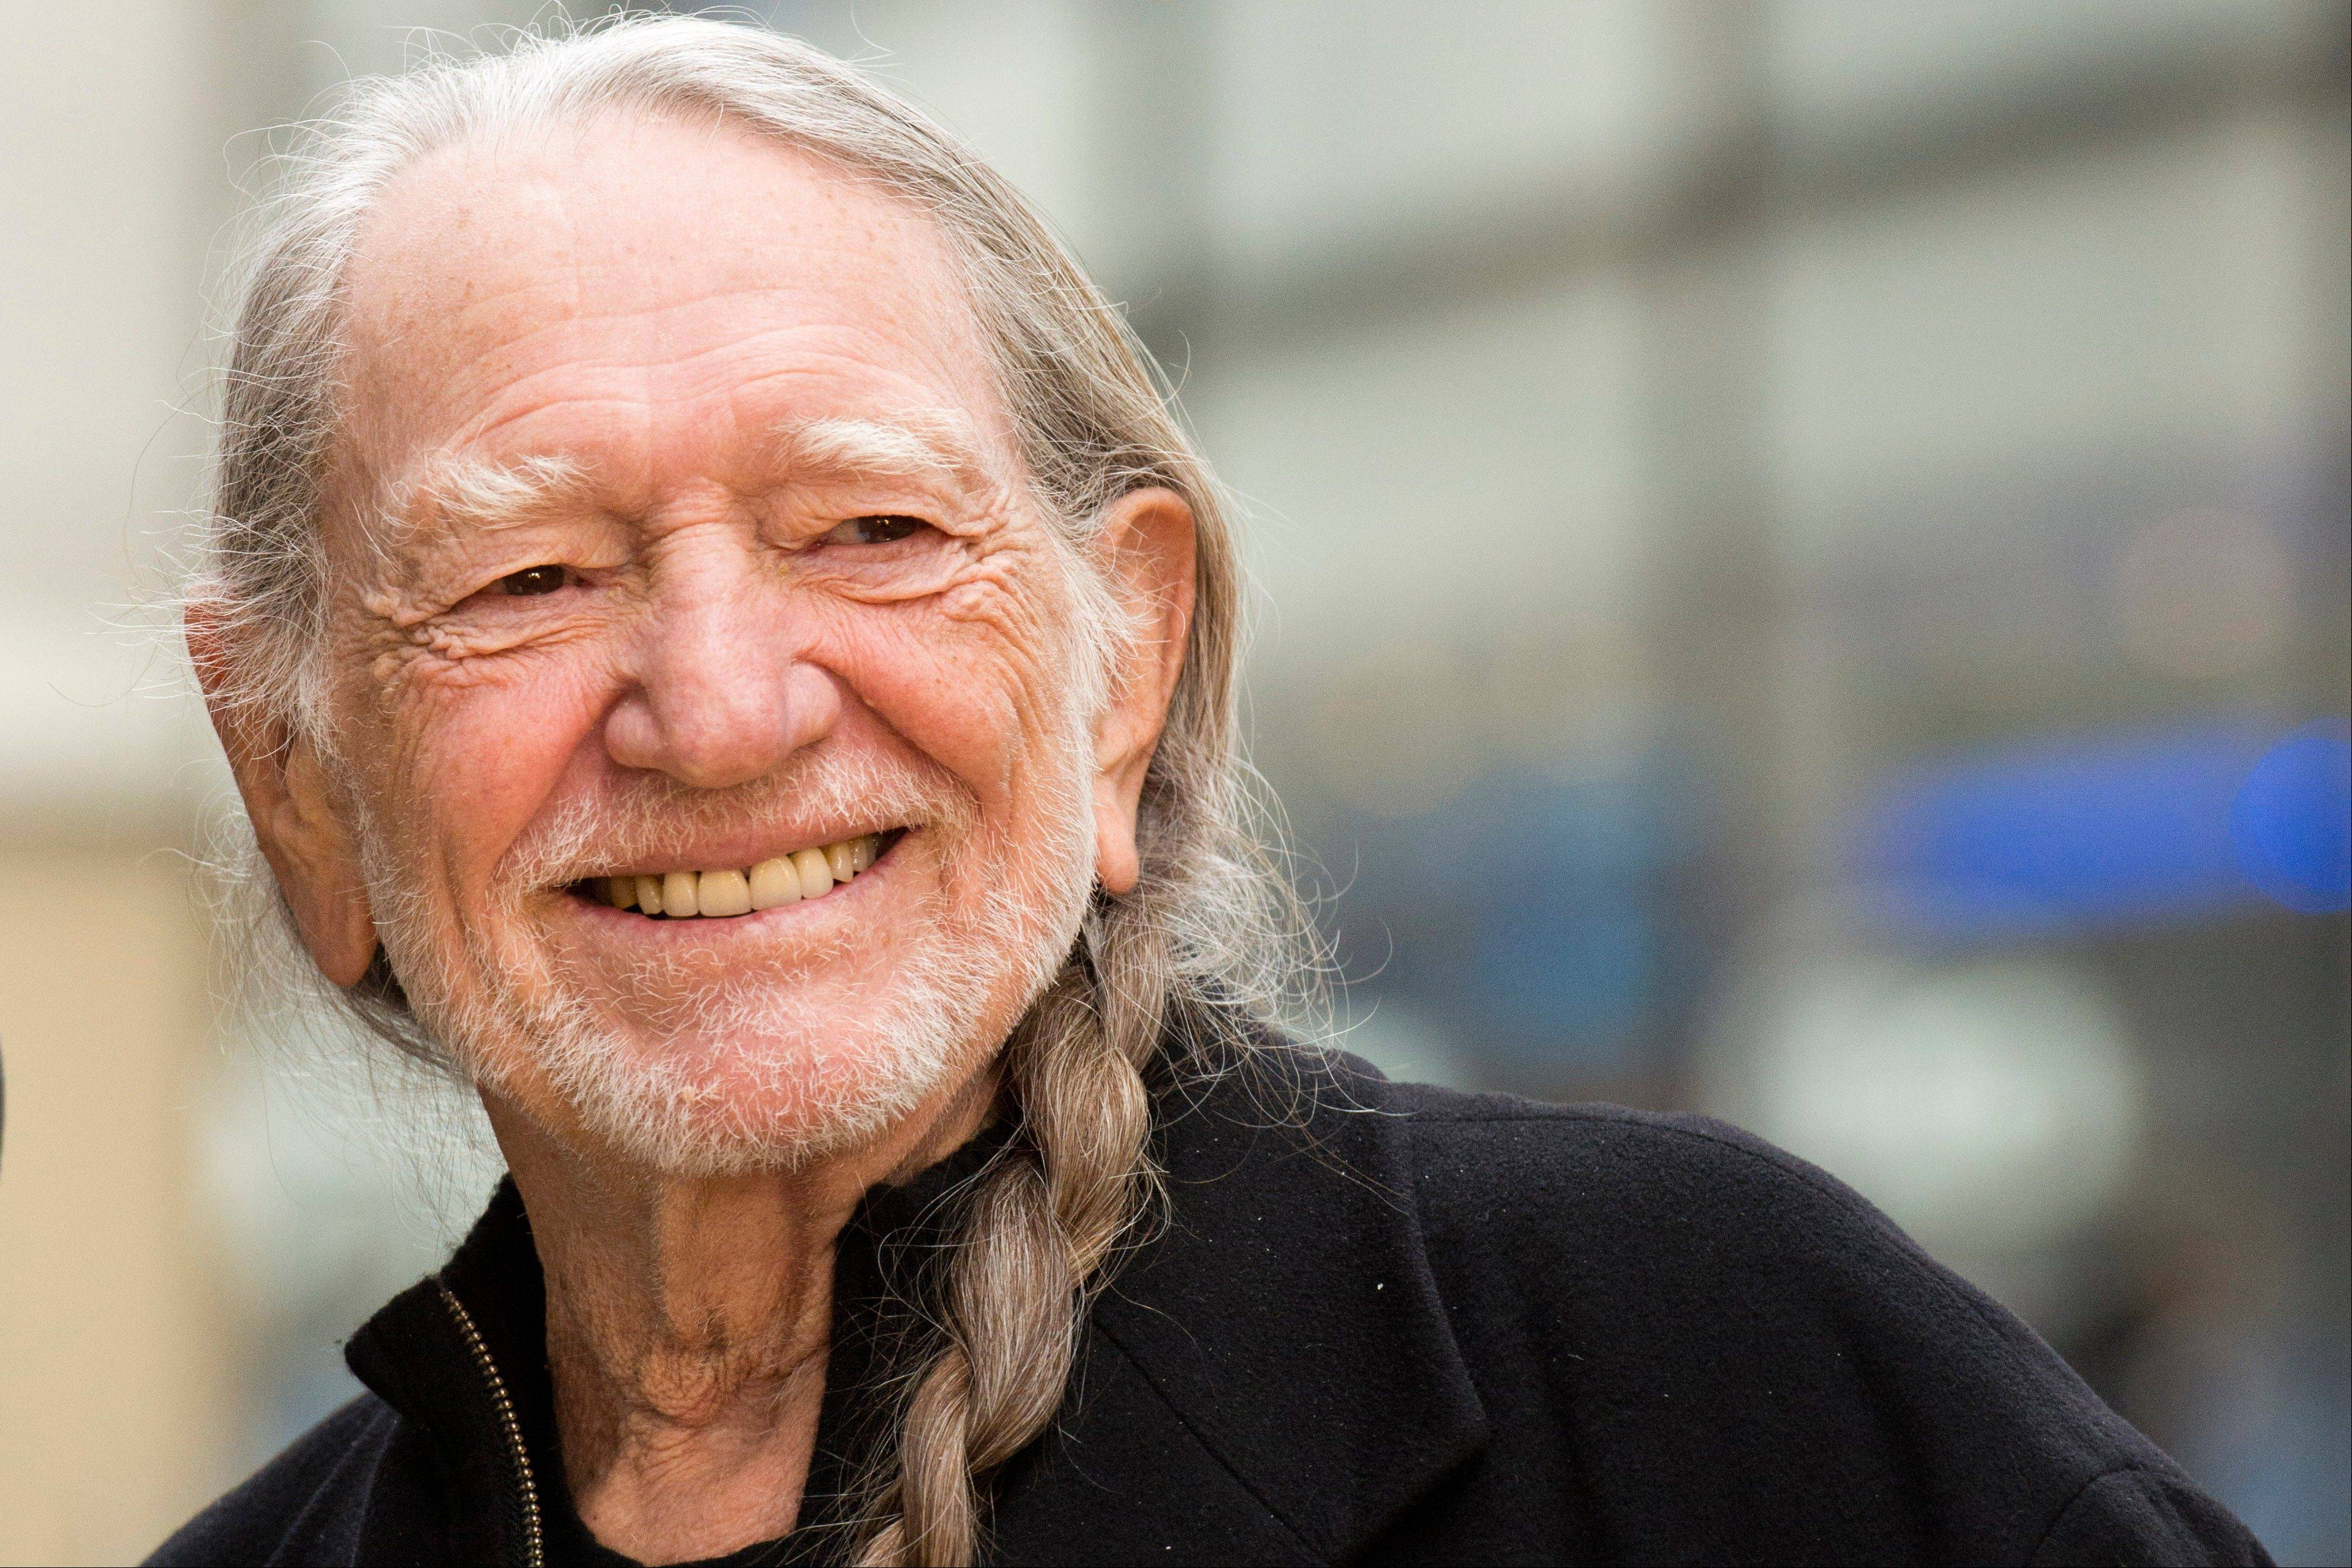 Country music legend Willie Nelson, who is turning 80, has been honored with lifetime achievement awards, serenaded at special performances and saluted by musicians from every genre of music.